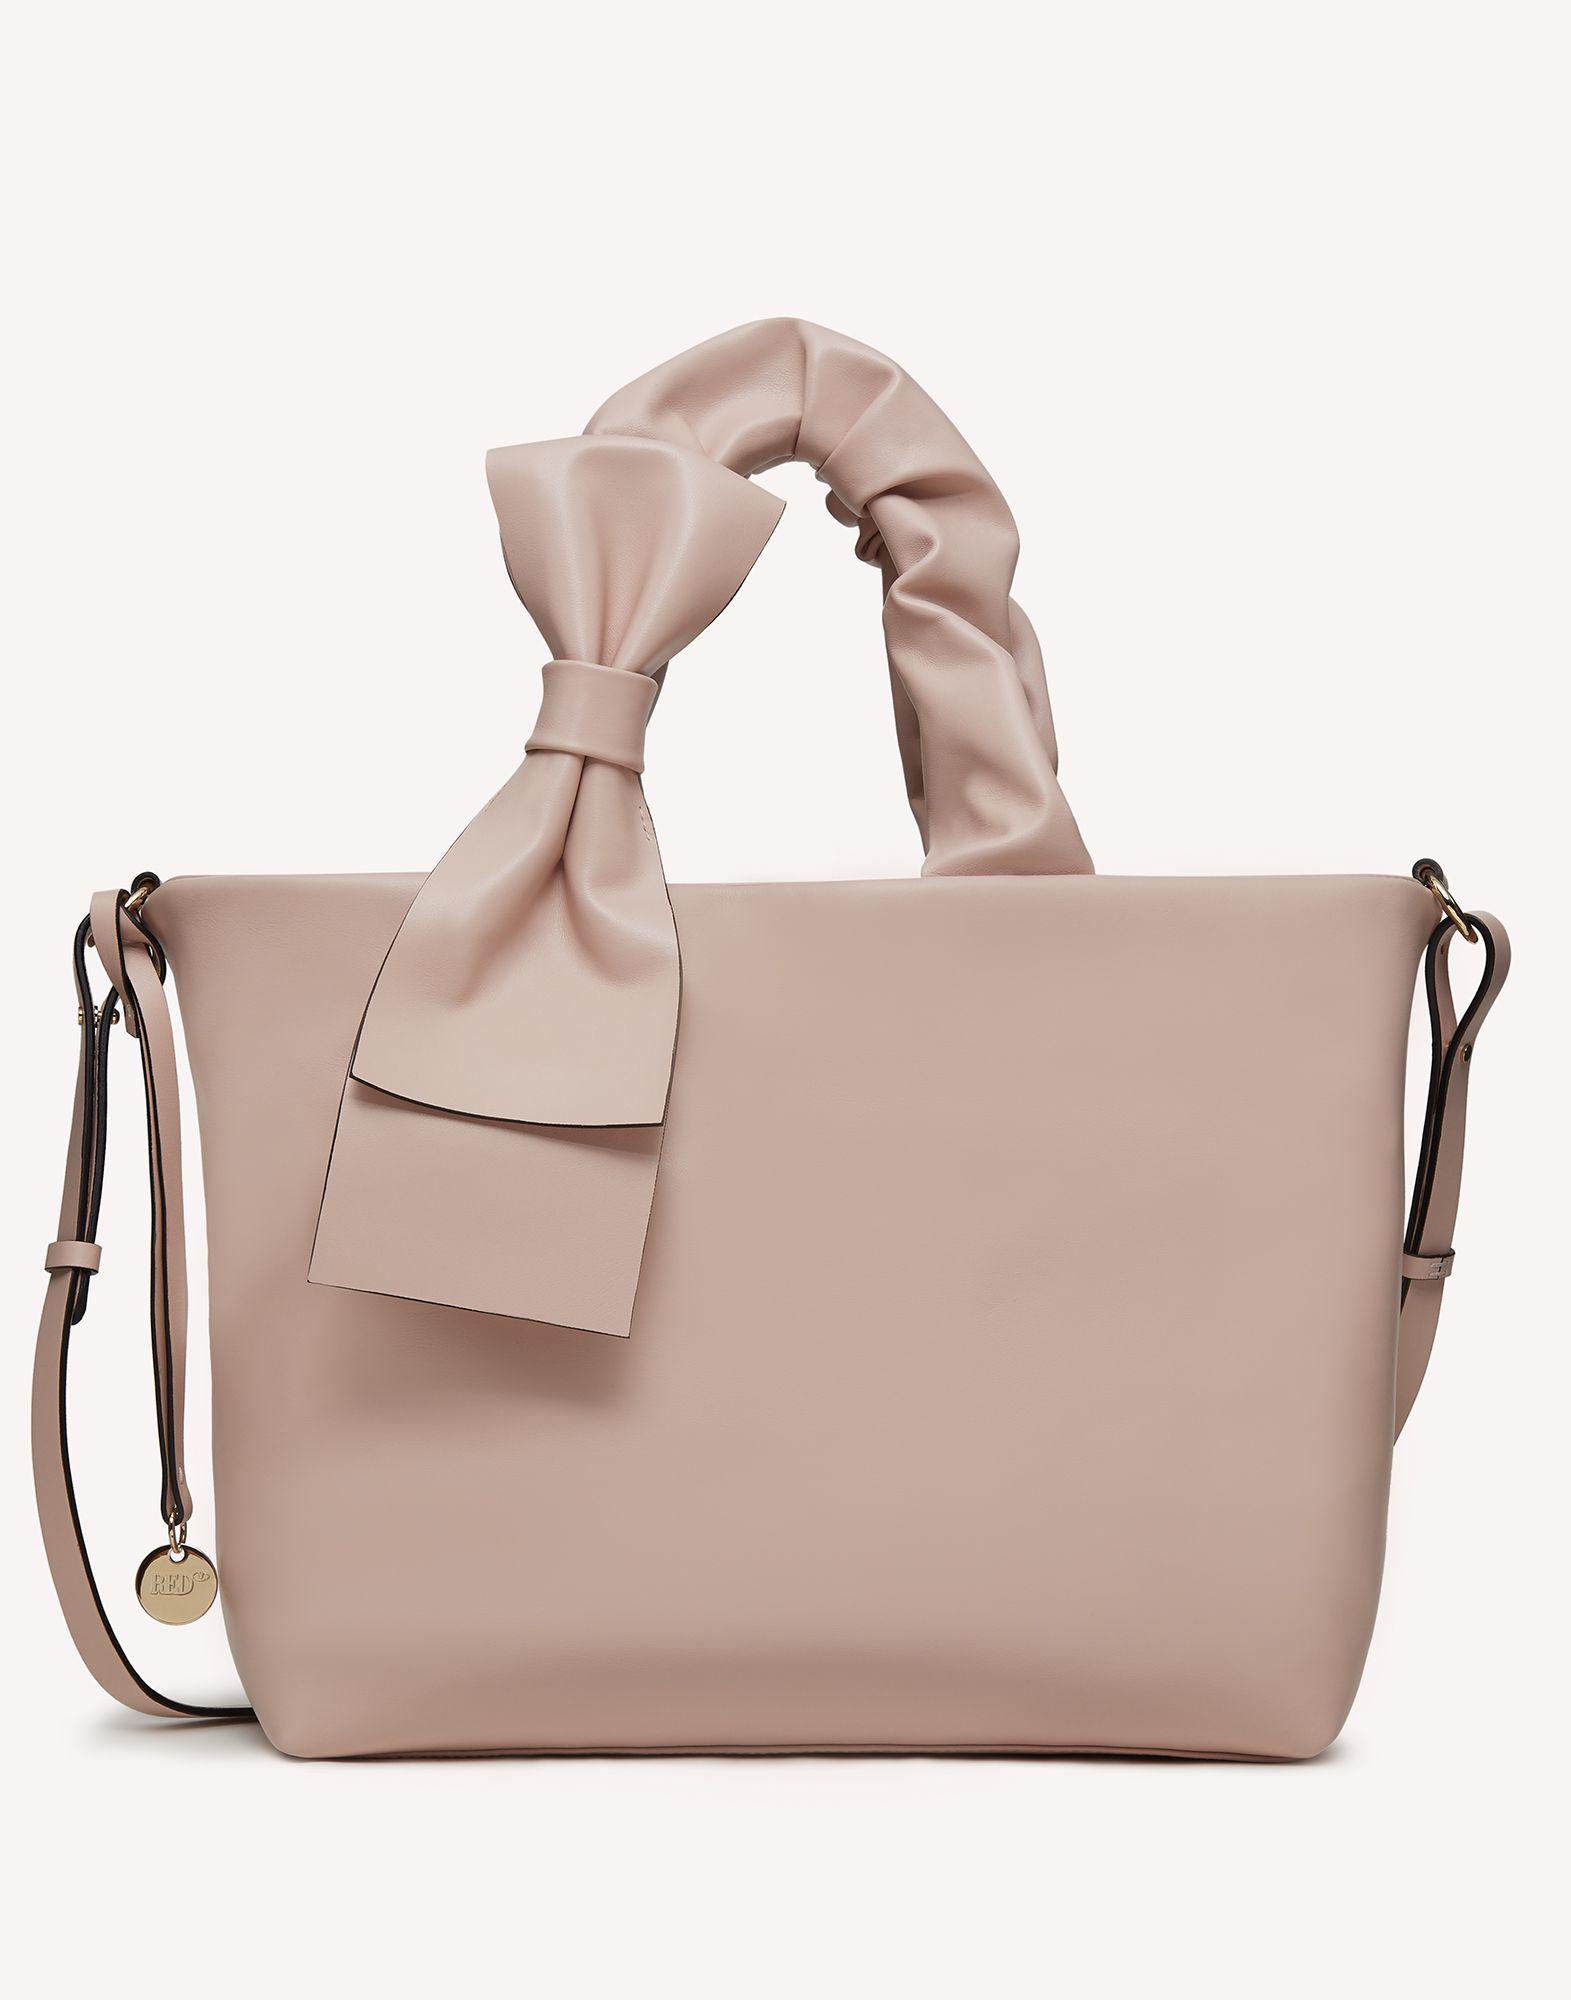 RE(D)BEL BOW TOTE